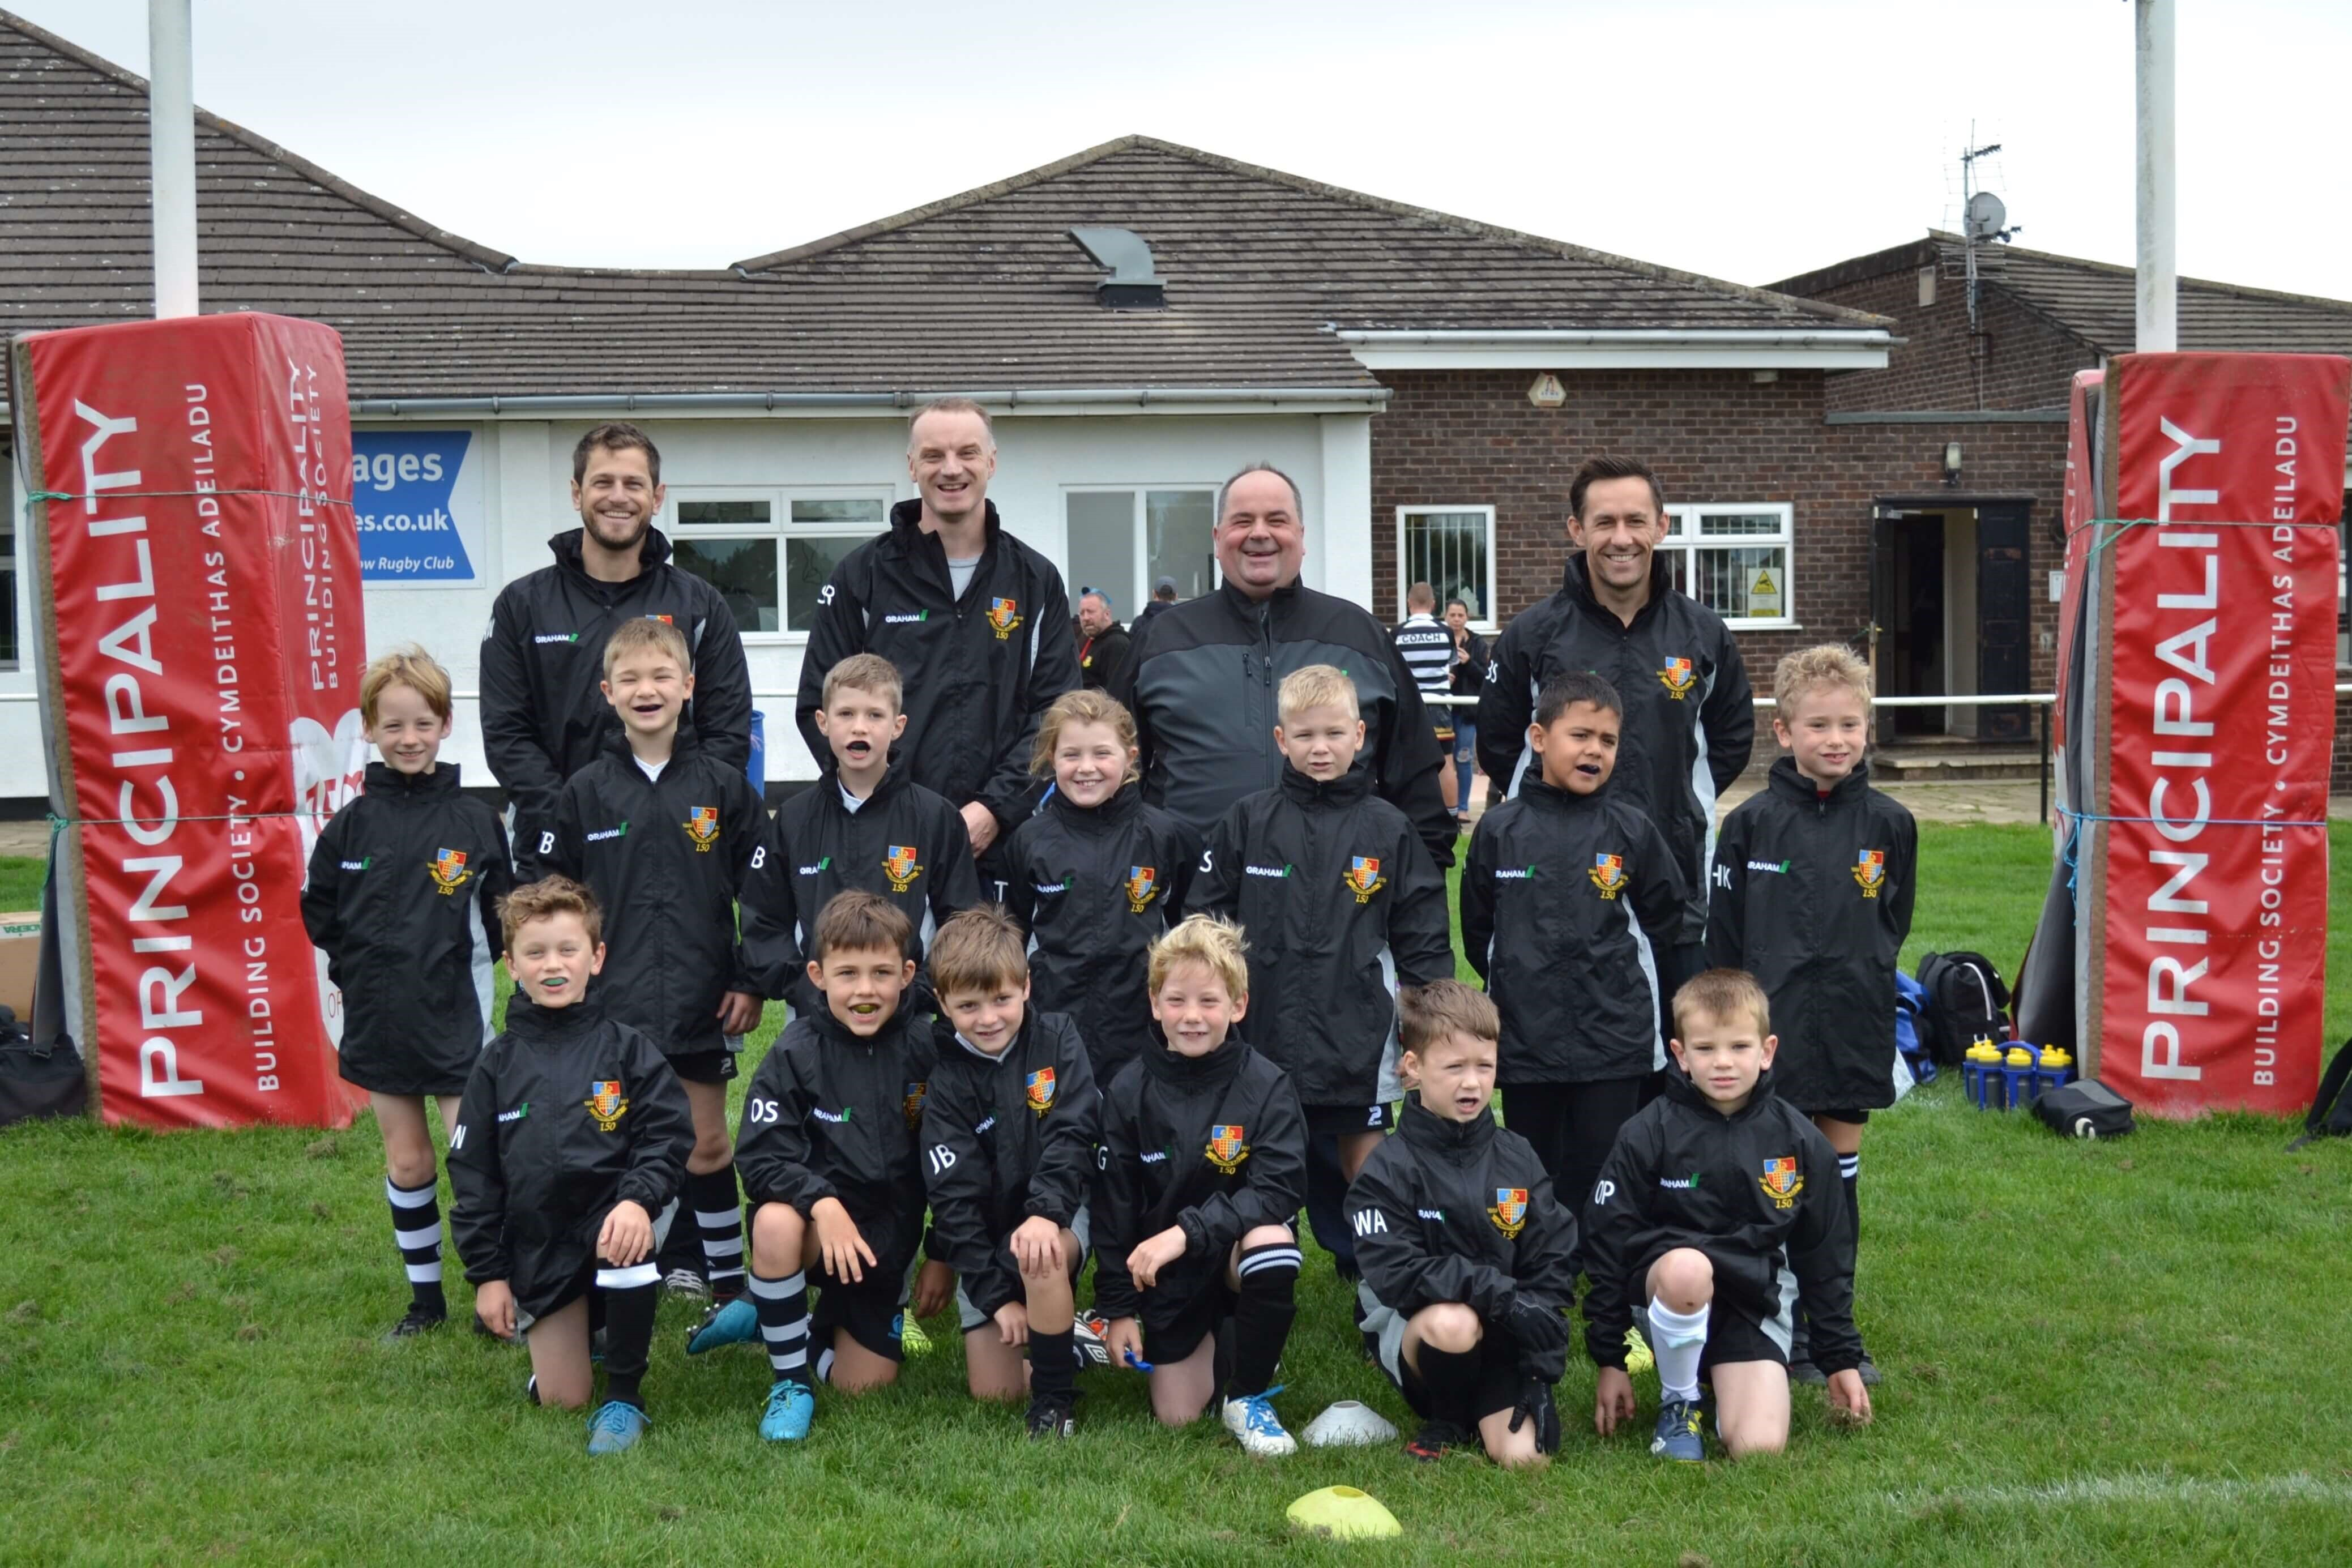 Chepstow RFC U9s kitted out in style image